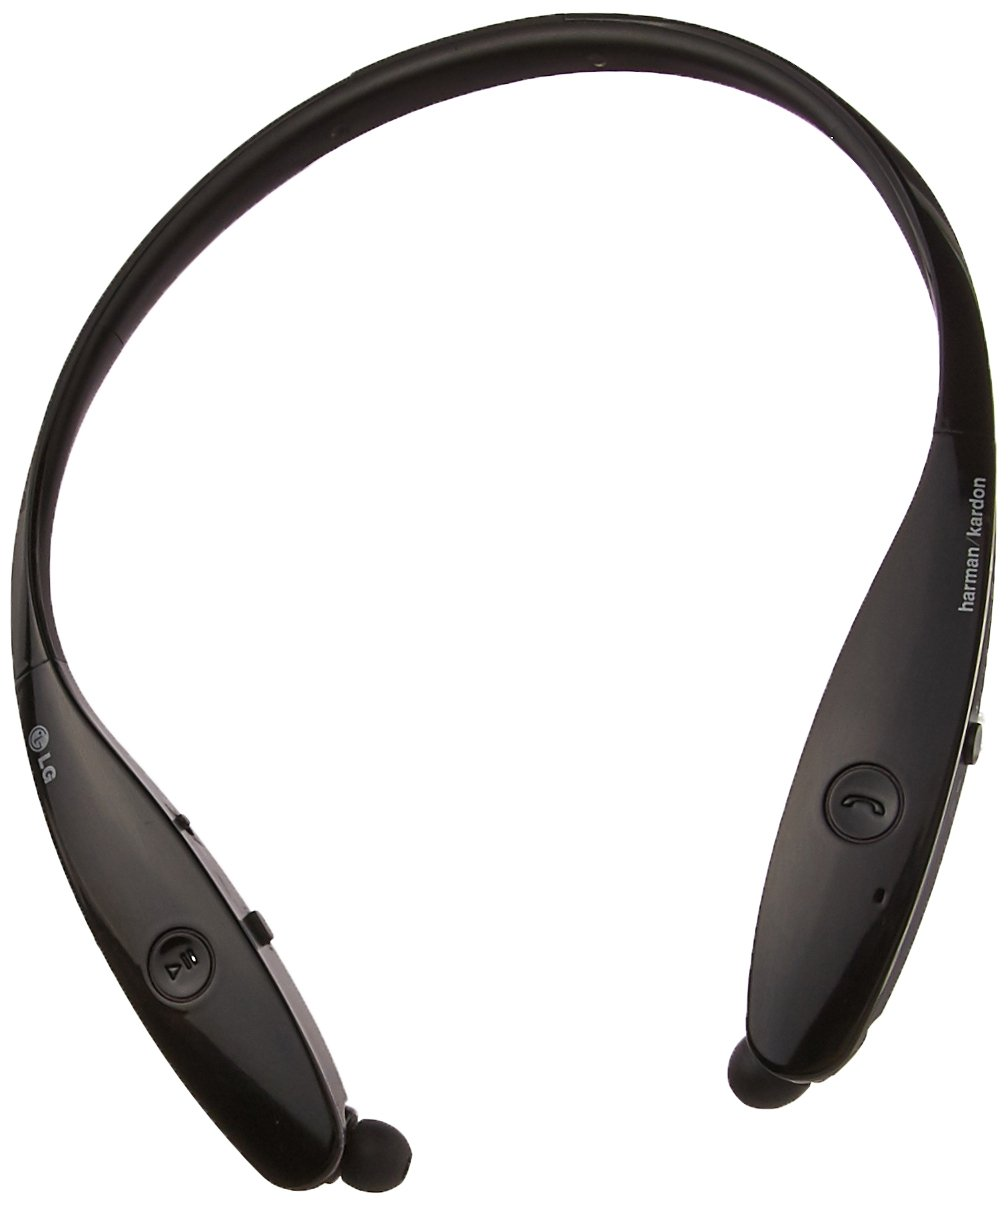 6ff03743ffe Amazon.com: LG Electronics Tone Infinim HBS-900 Bluetooth Wireless Stereo  Headset- Retail Packaging - Black: Cell Phones & Accessories